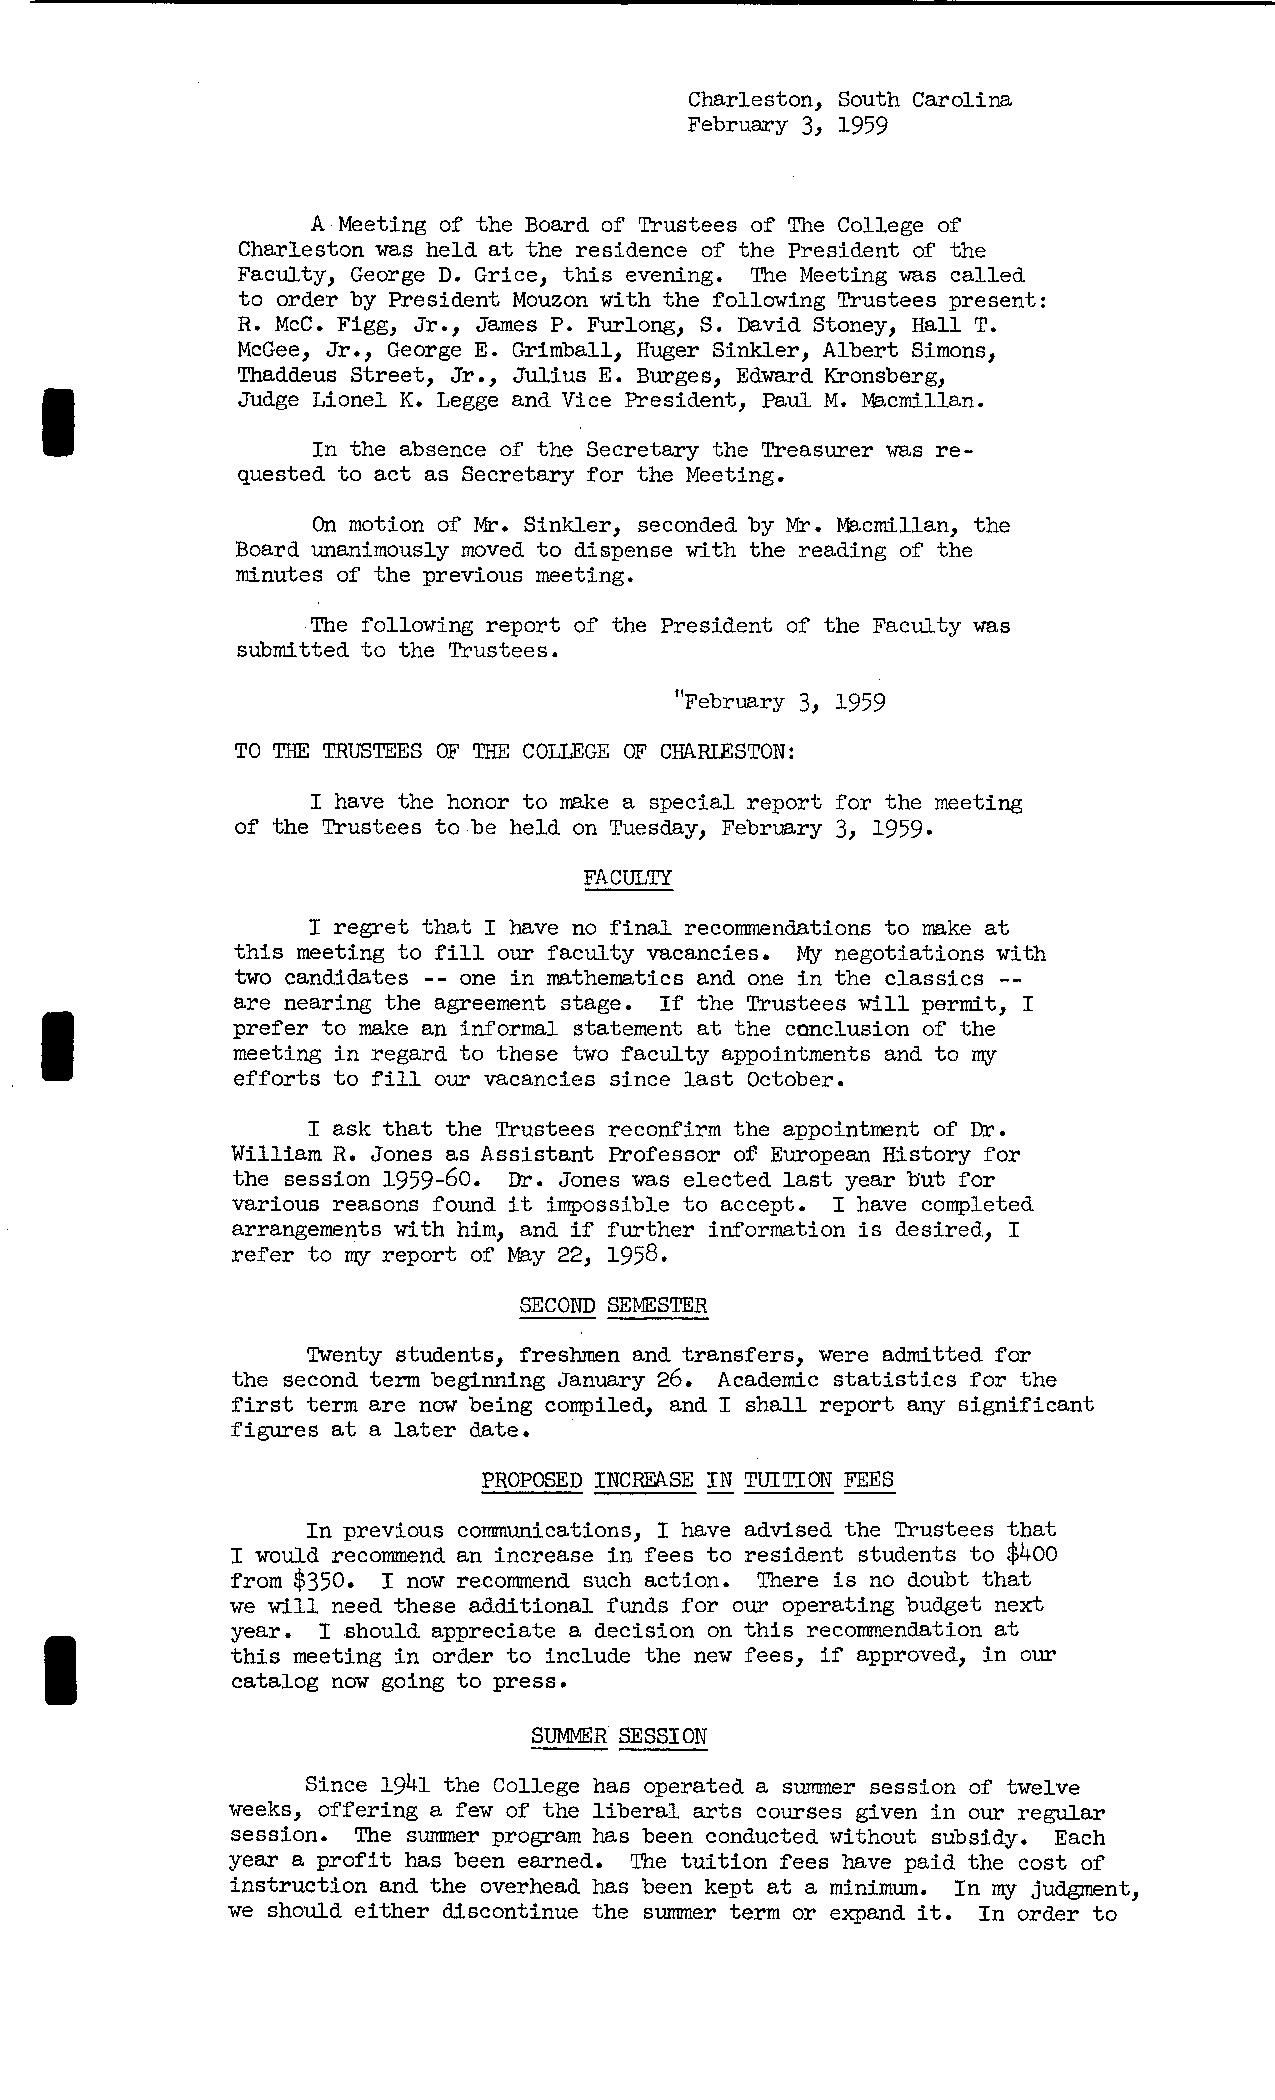 Board Meeting Minutes, 1959-1962